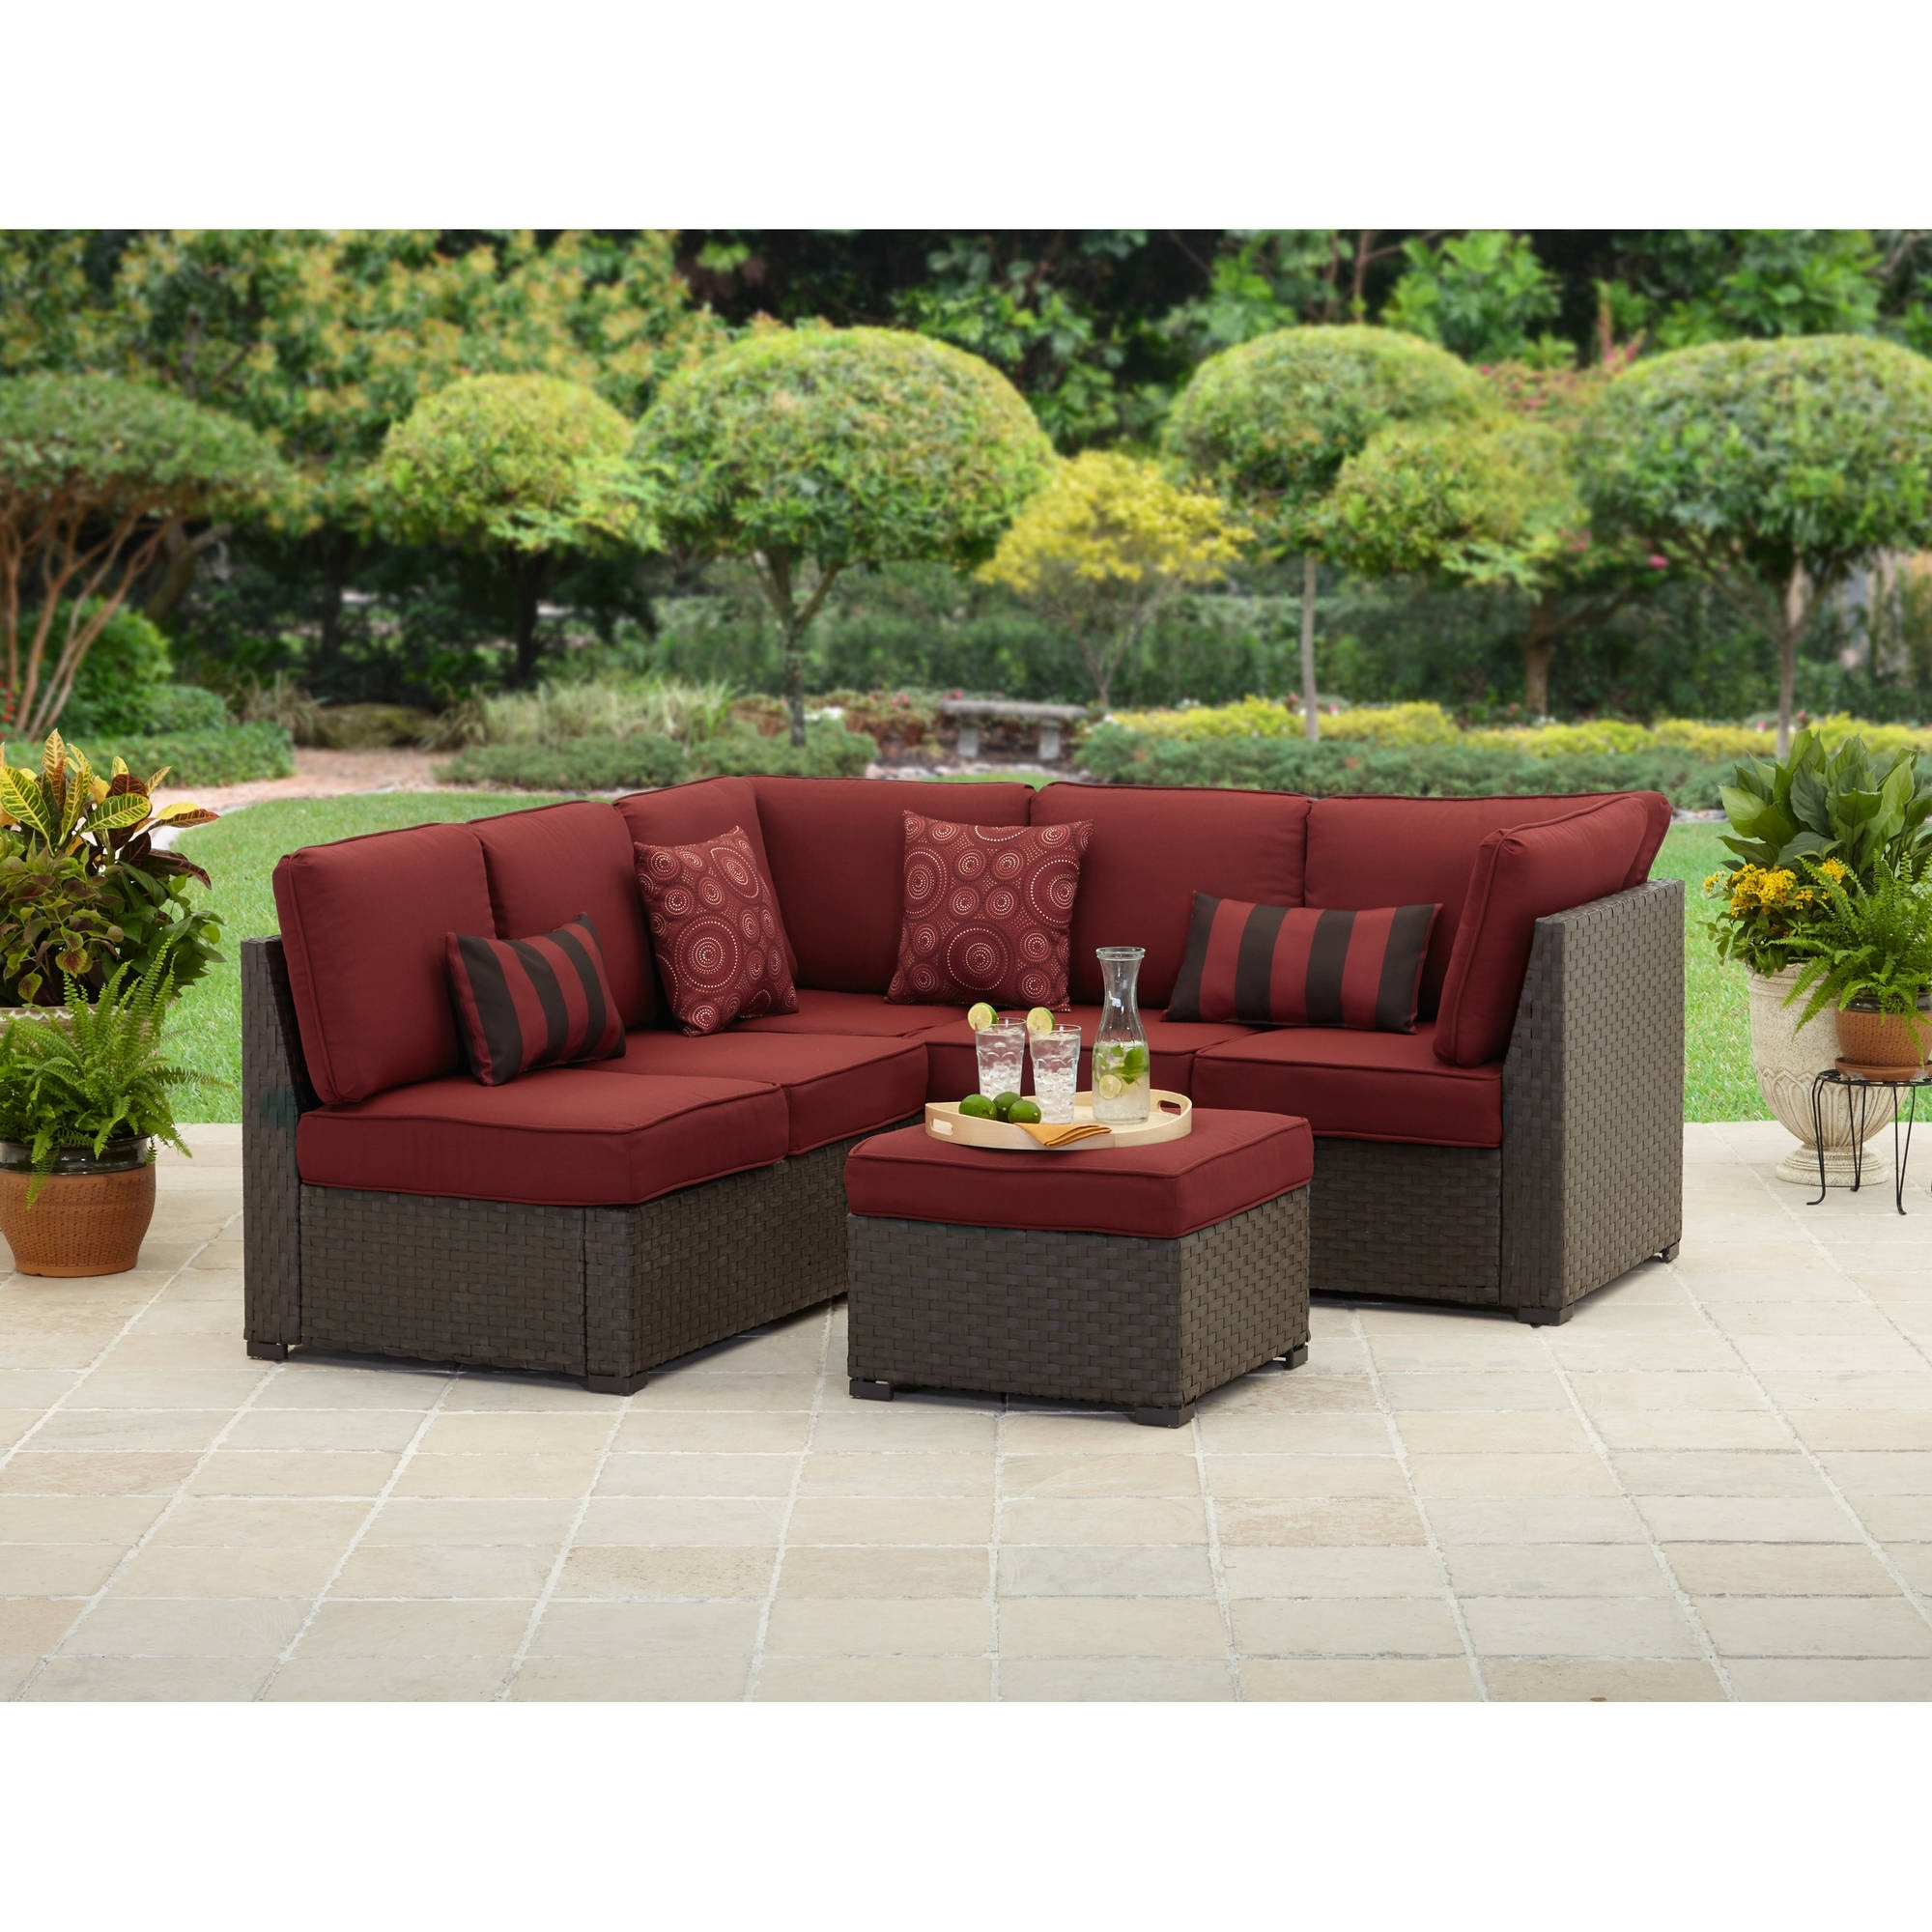 2018 Patio Conversation Sets With Ottomans With Regard To Better Homes And Gardens Rush Valley 3 Piece Outdoor Sectional (View 11 of 20)